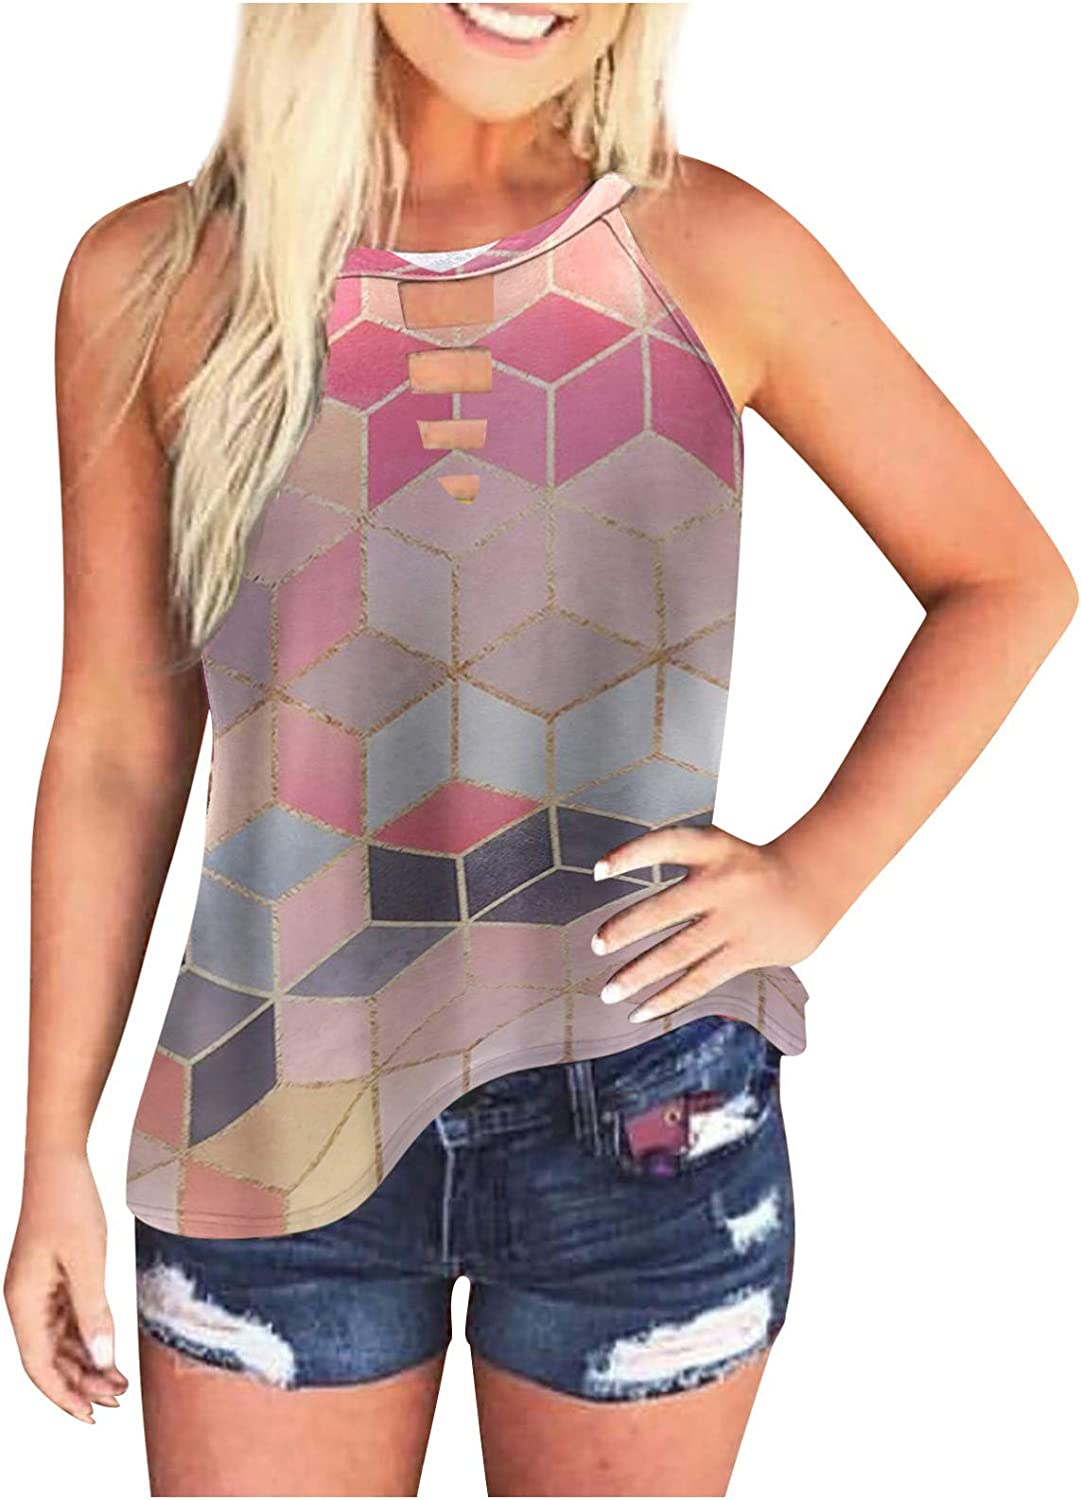 Women's Strap Sleeveless Tank Tops Tie Dye Plaid Print Vests Summer Sexy Off Shoulder T-Shirts Halter Blouse for Women